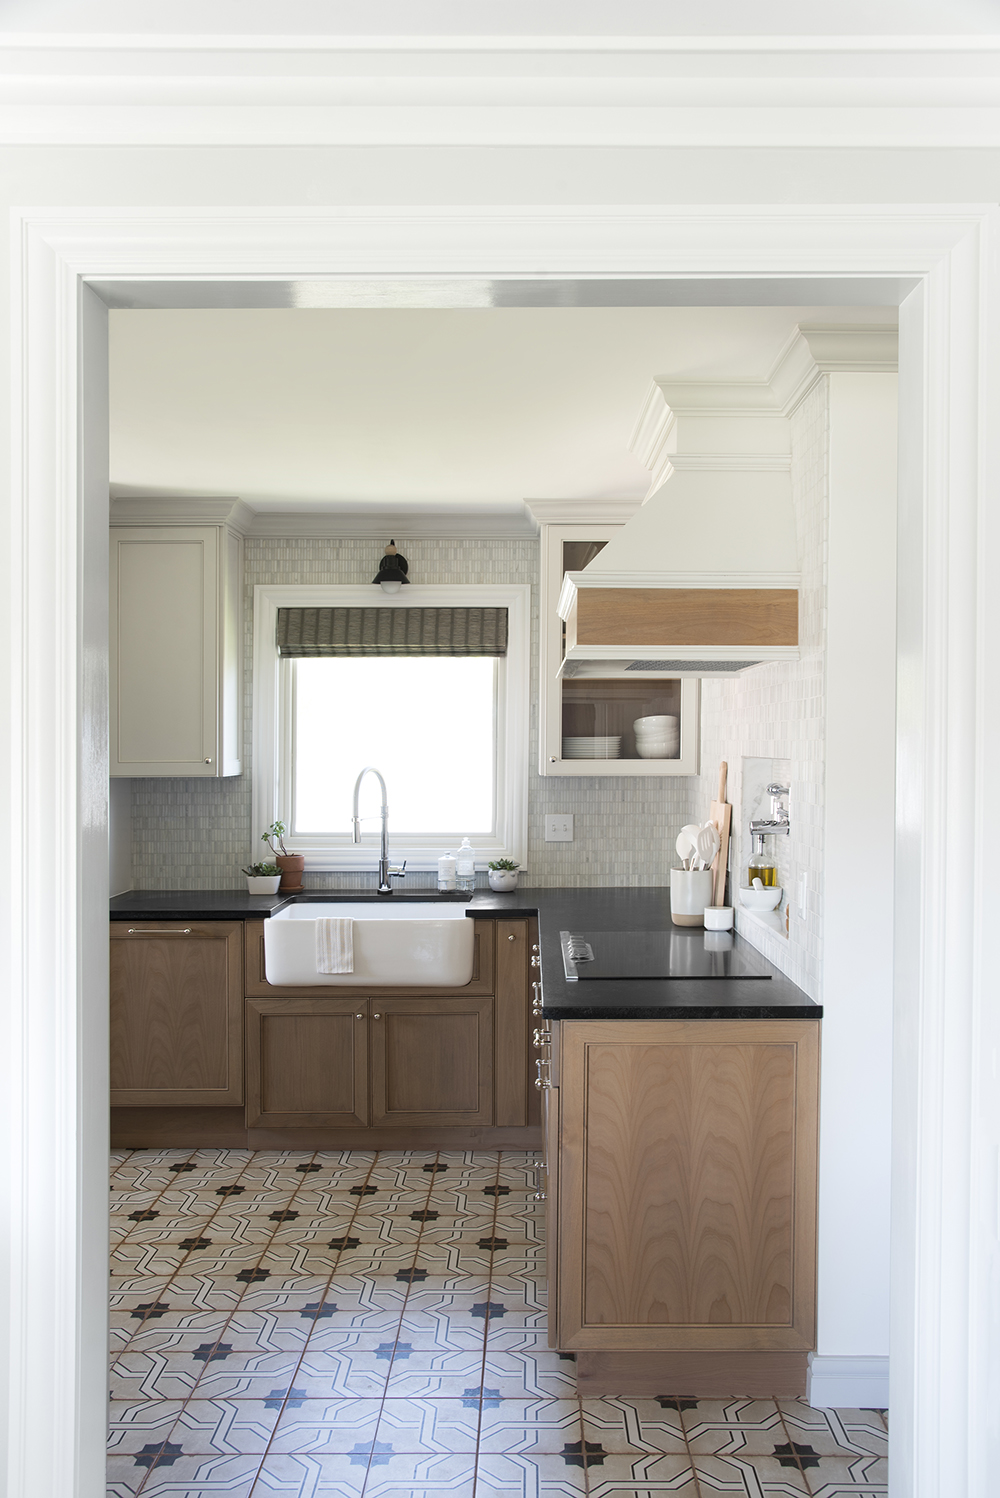 The Complete Kitchen Renovation Budget - roomfortuesday.com